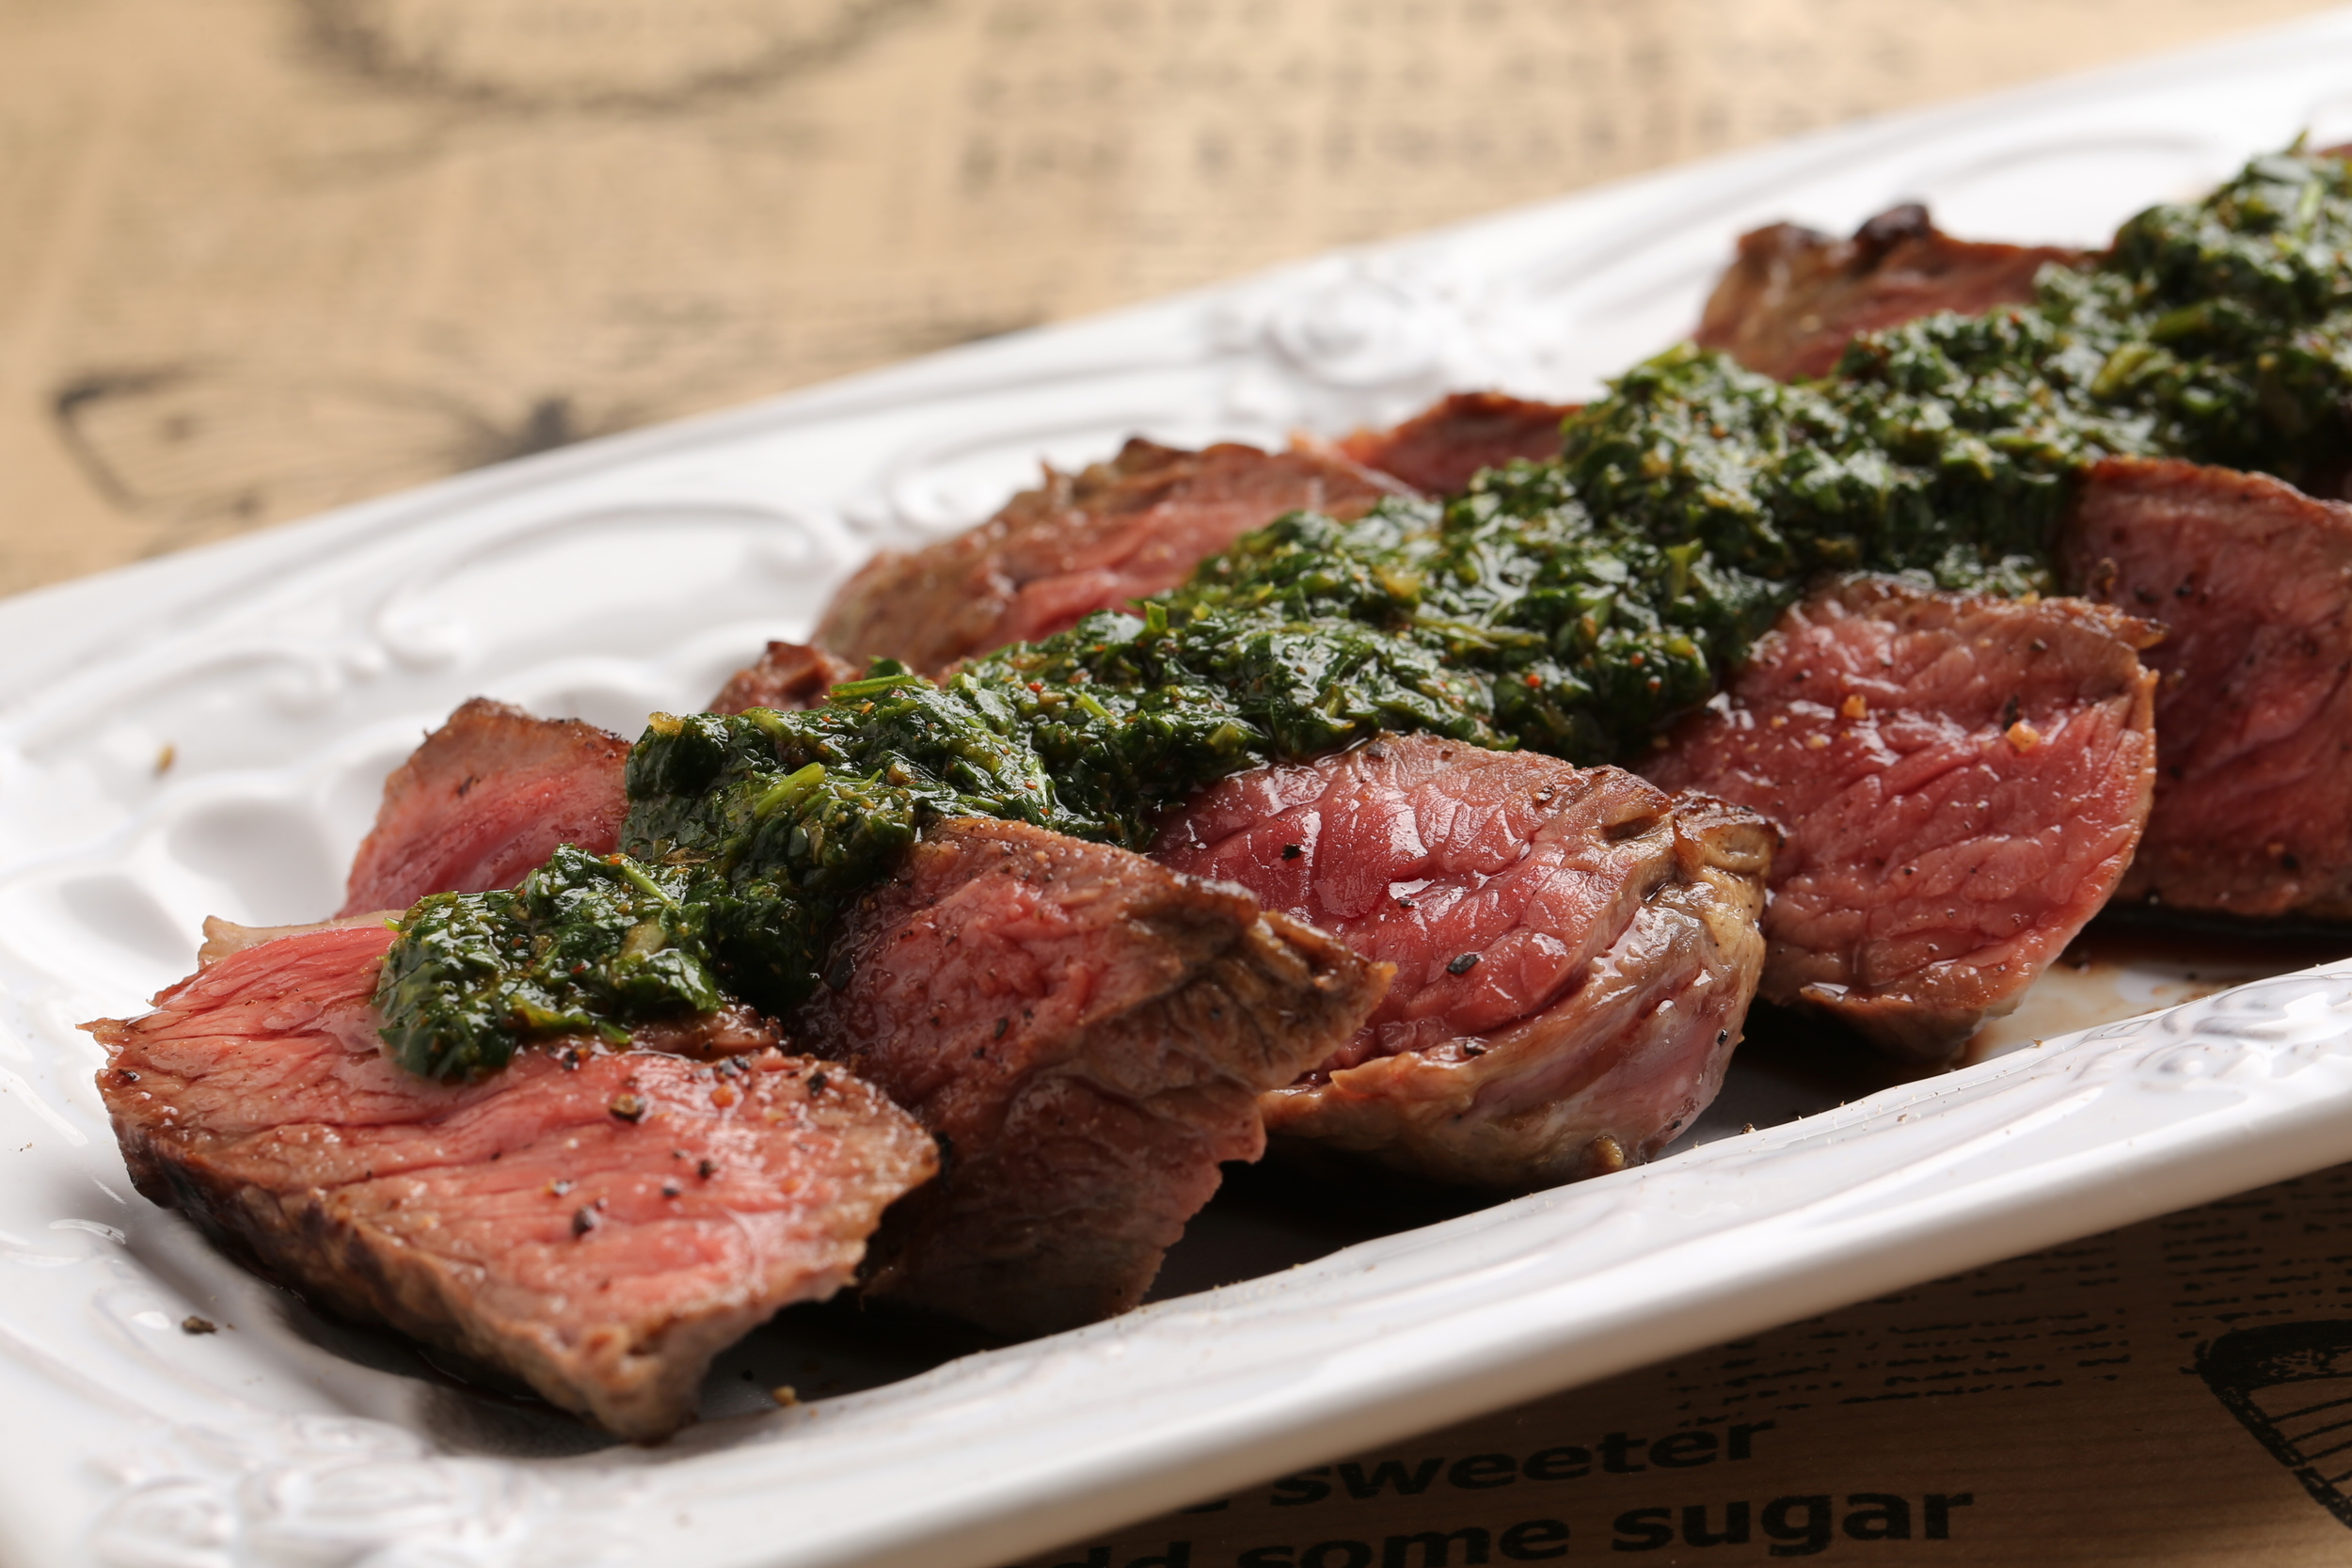 Steak and Chimichurri